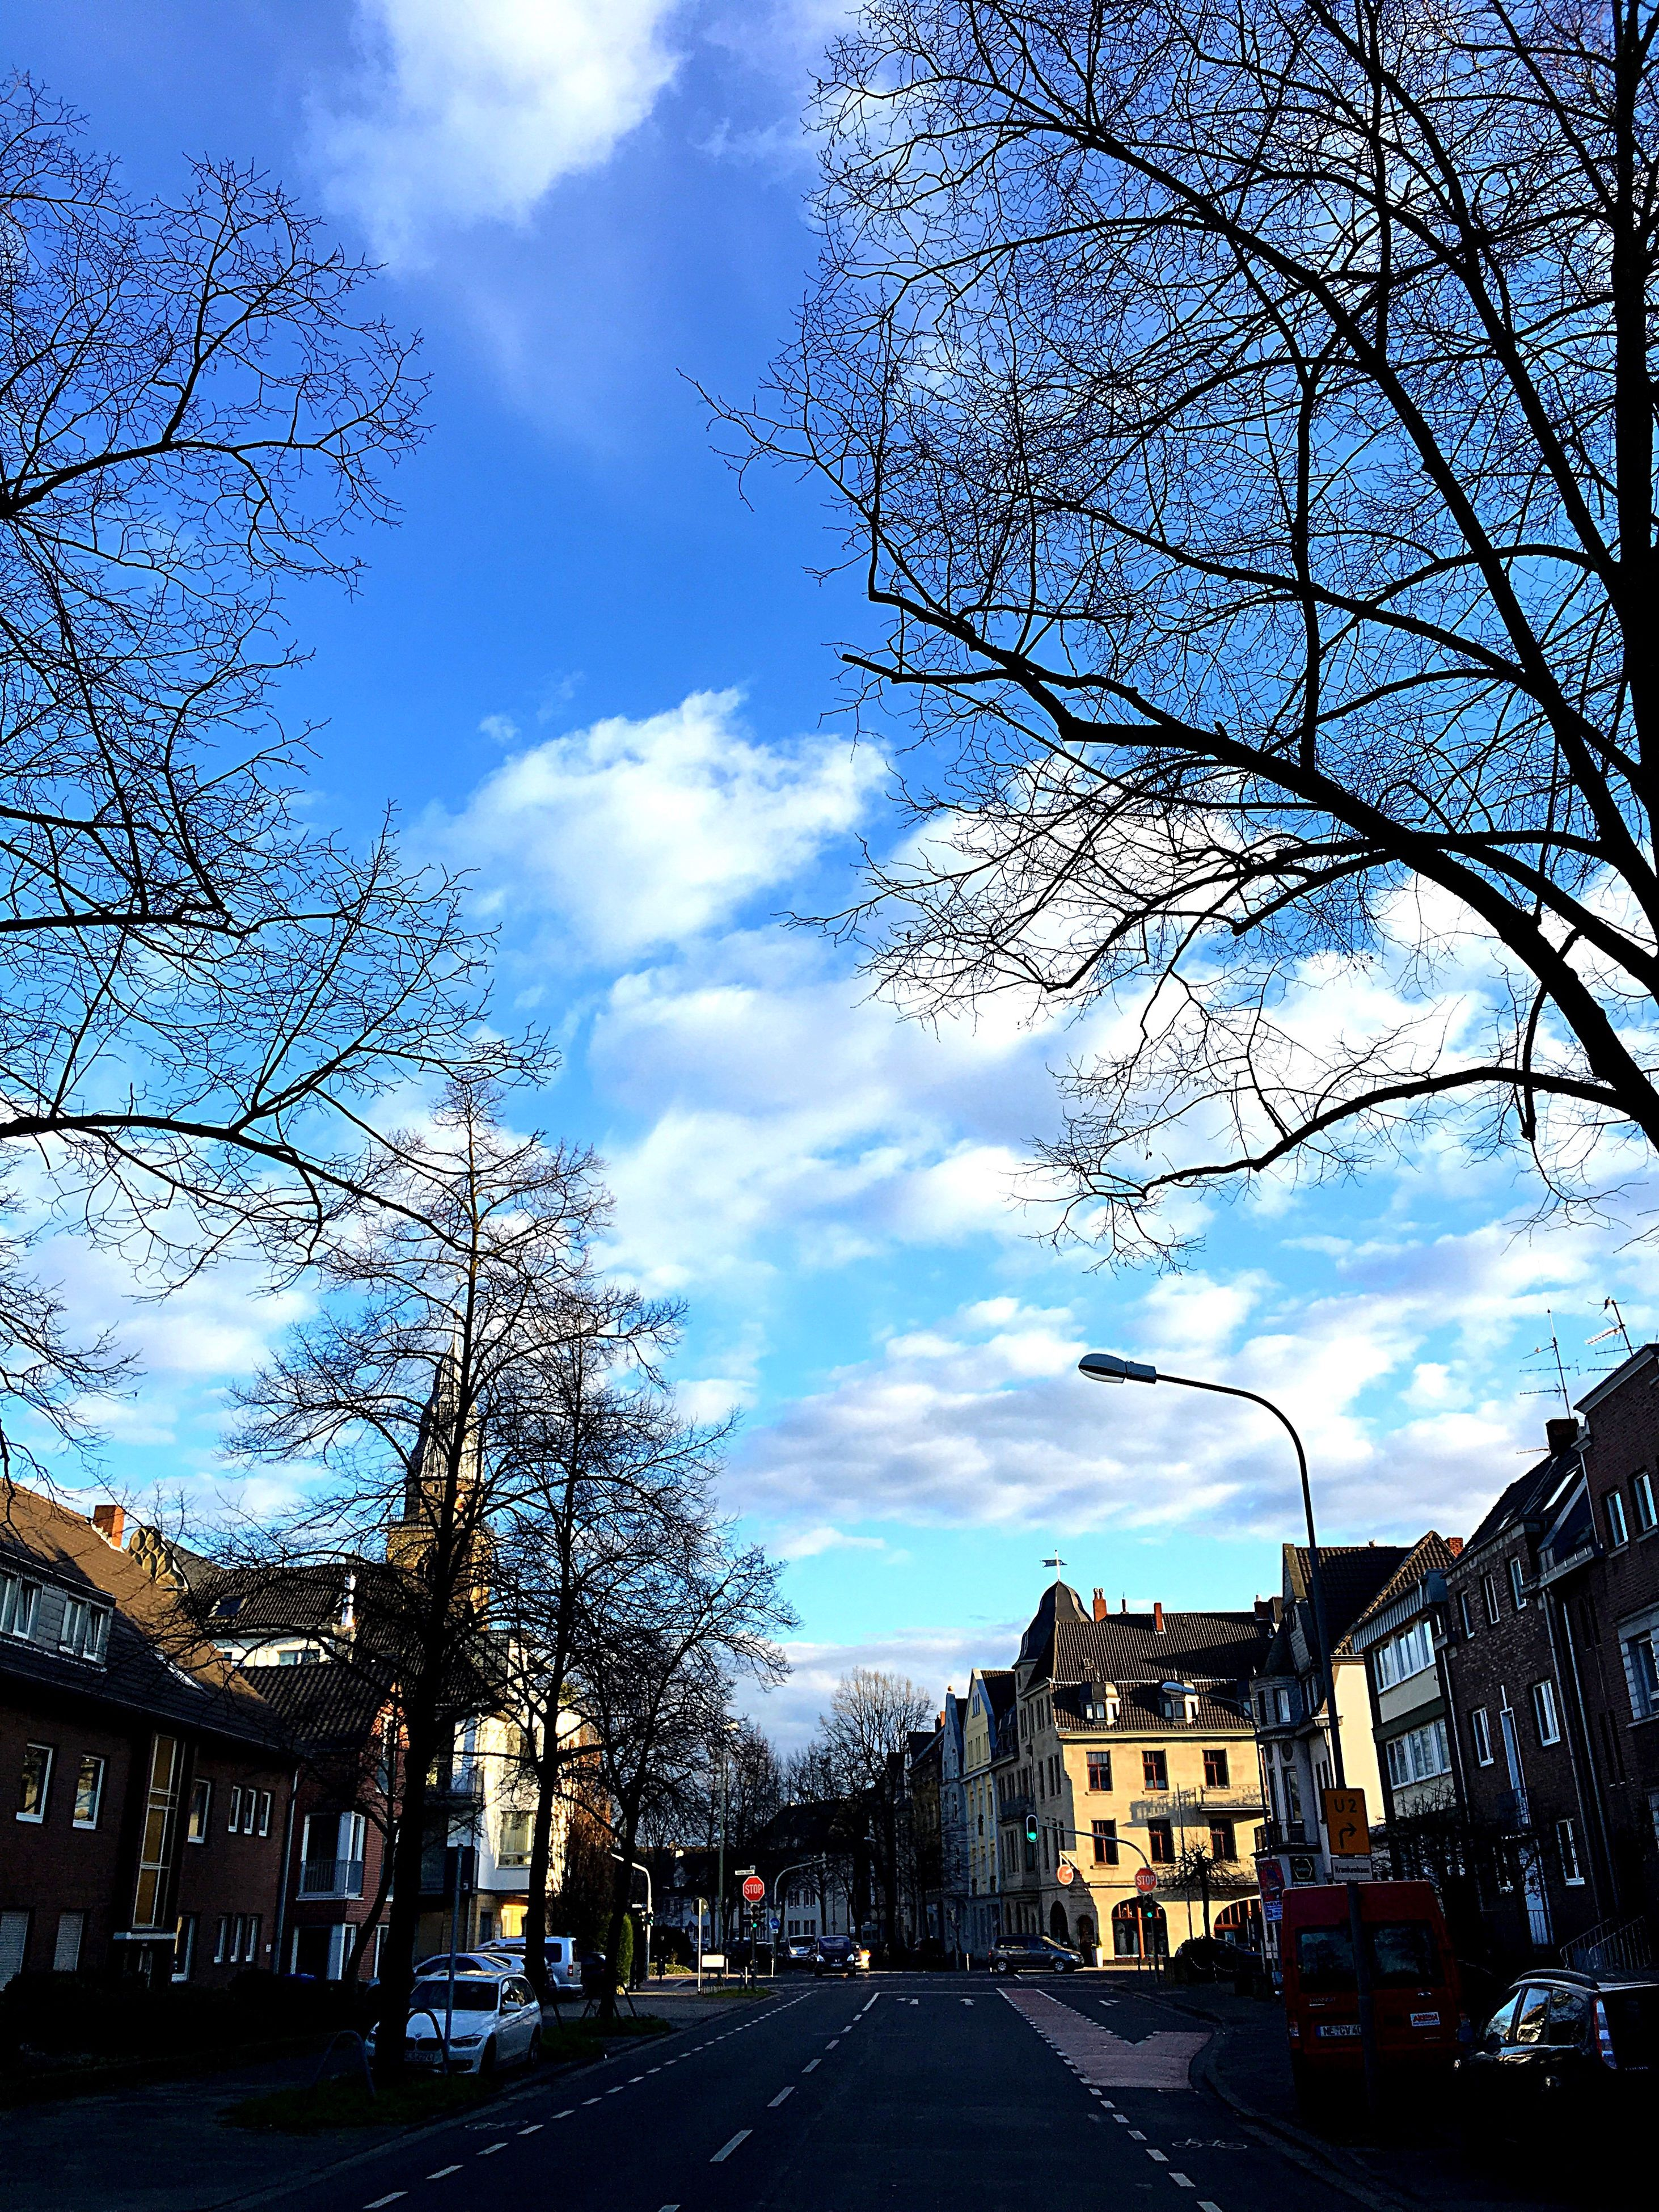 building exterior, transportation, sky, built structure, architecture, car, the way forward, bare tree, road, street, tree, land vehicle, cloud - sky, city, diminishing perspective, cloud, mode of transport, vanishing point, residential building, house